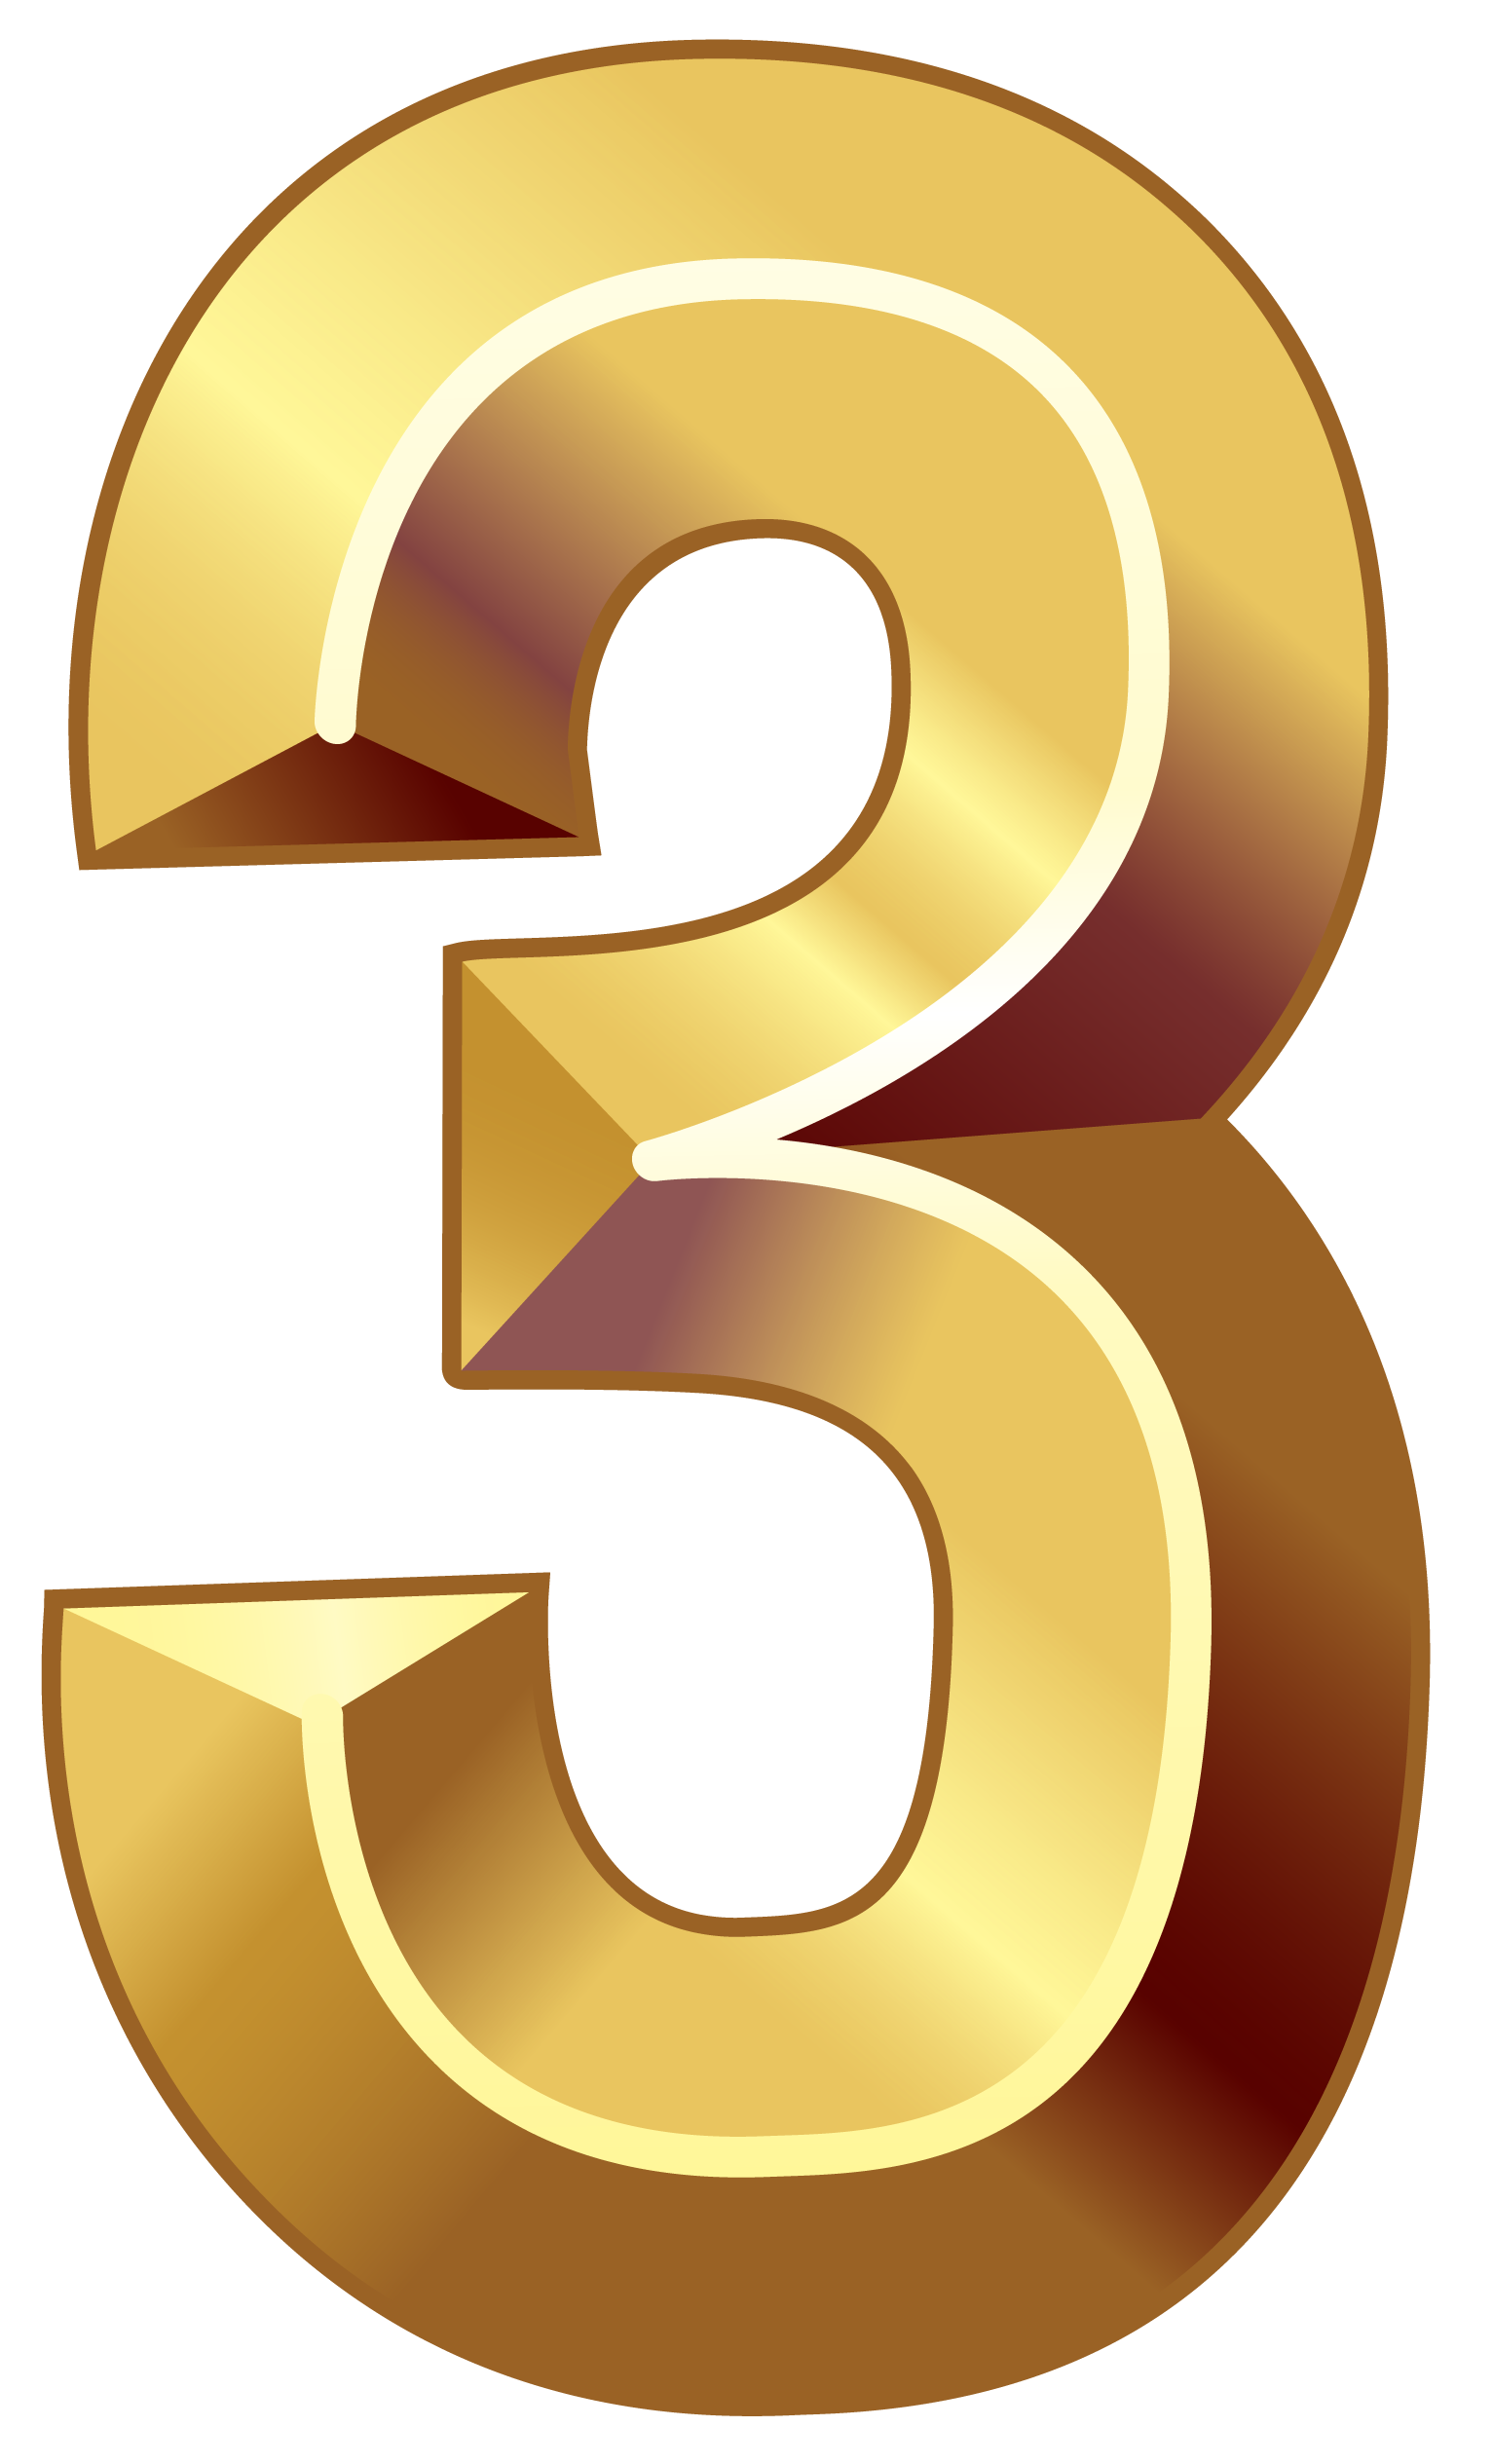 Gold numbers png. Number three clipart image